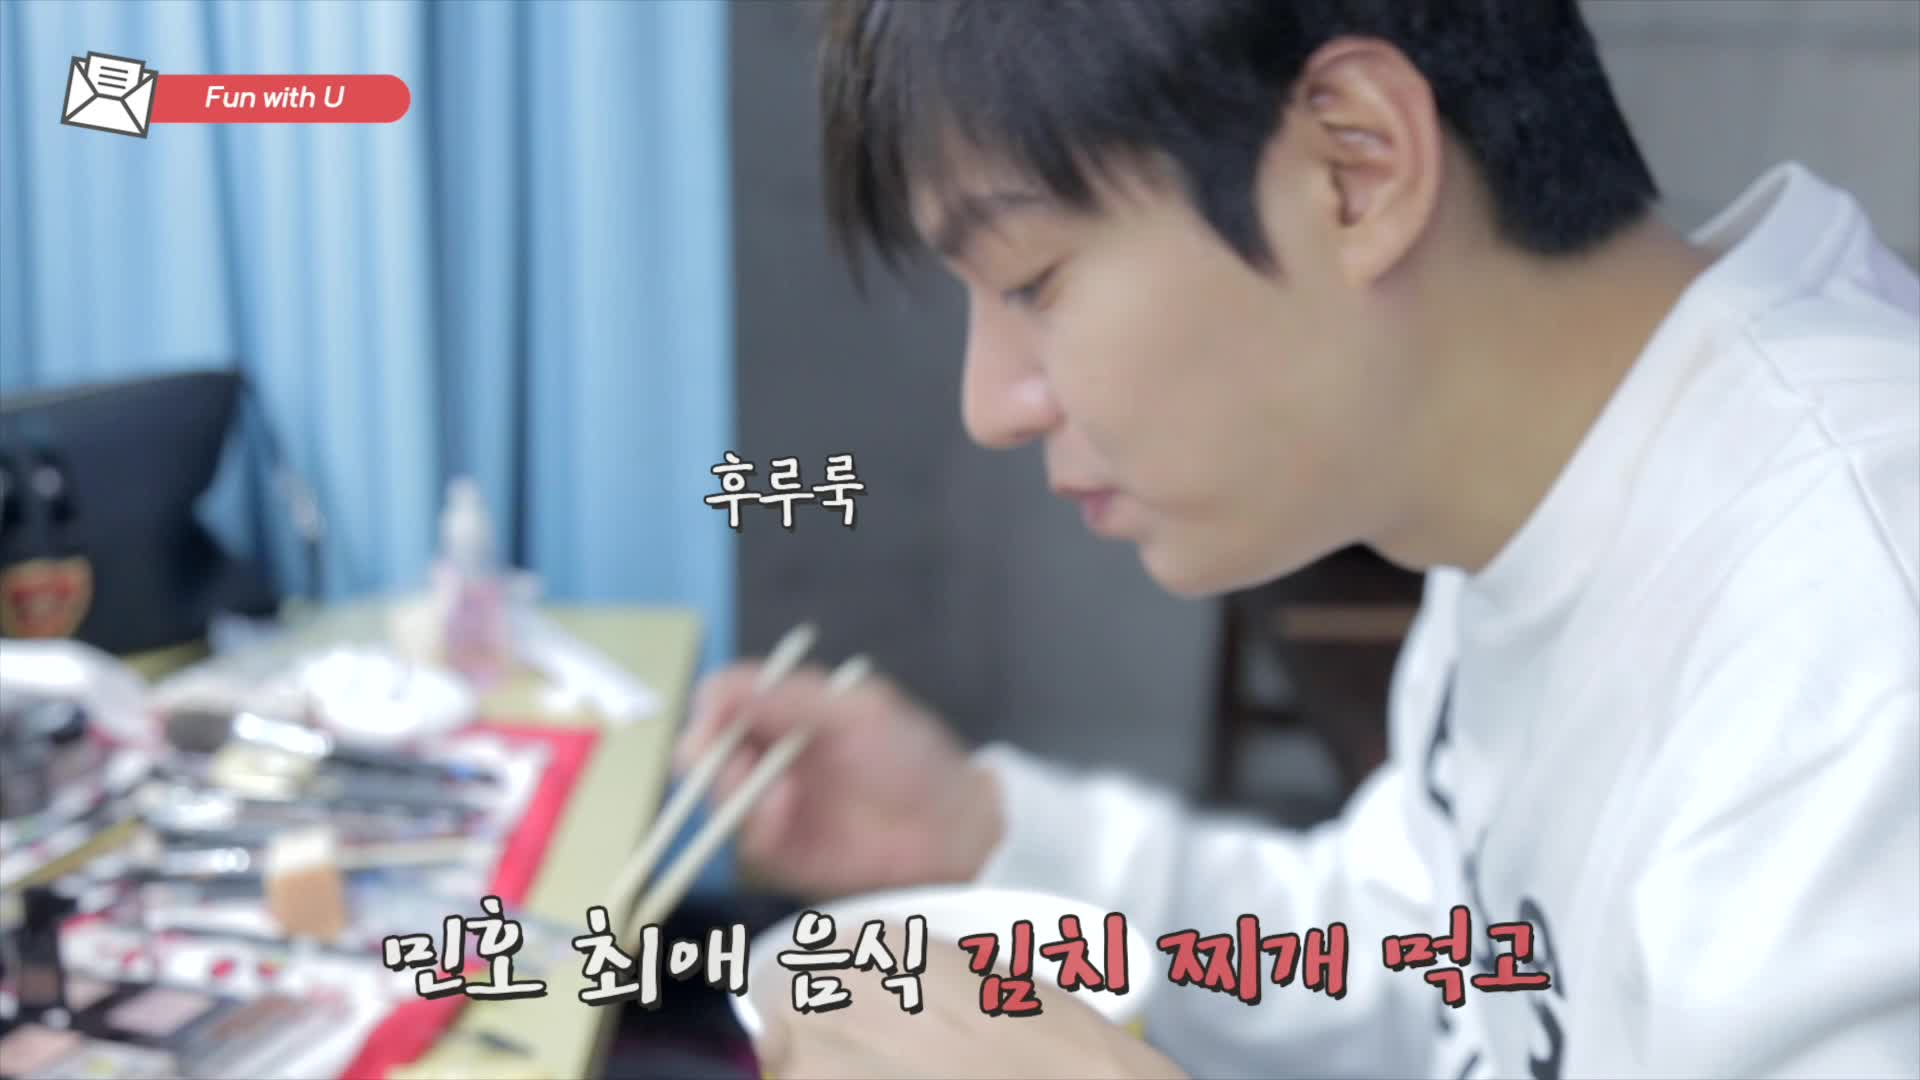 [LEE MIN HO] 8 Letters #EP3. Fun with U (?+함께=즐거움)